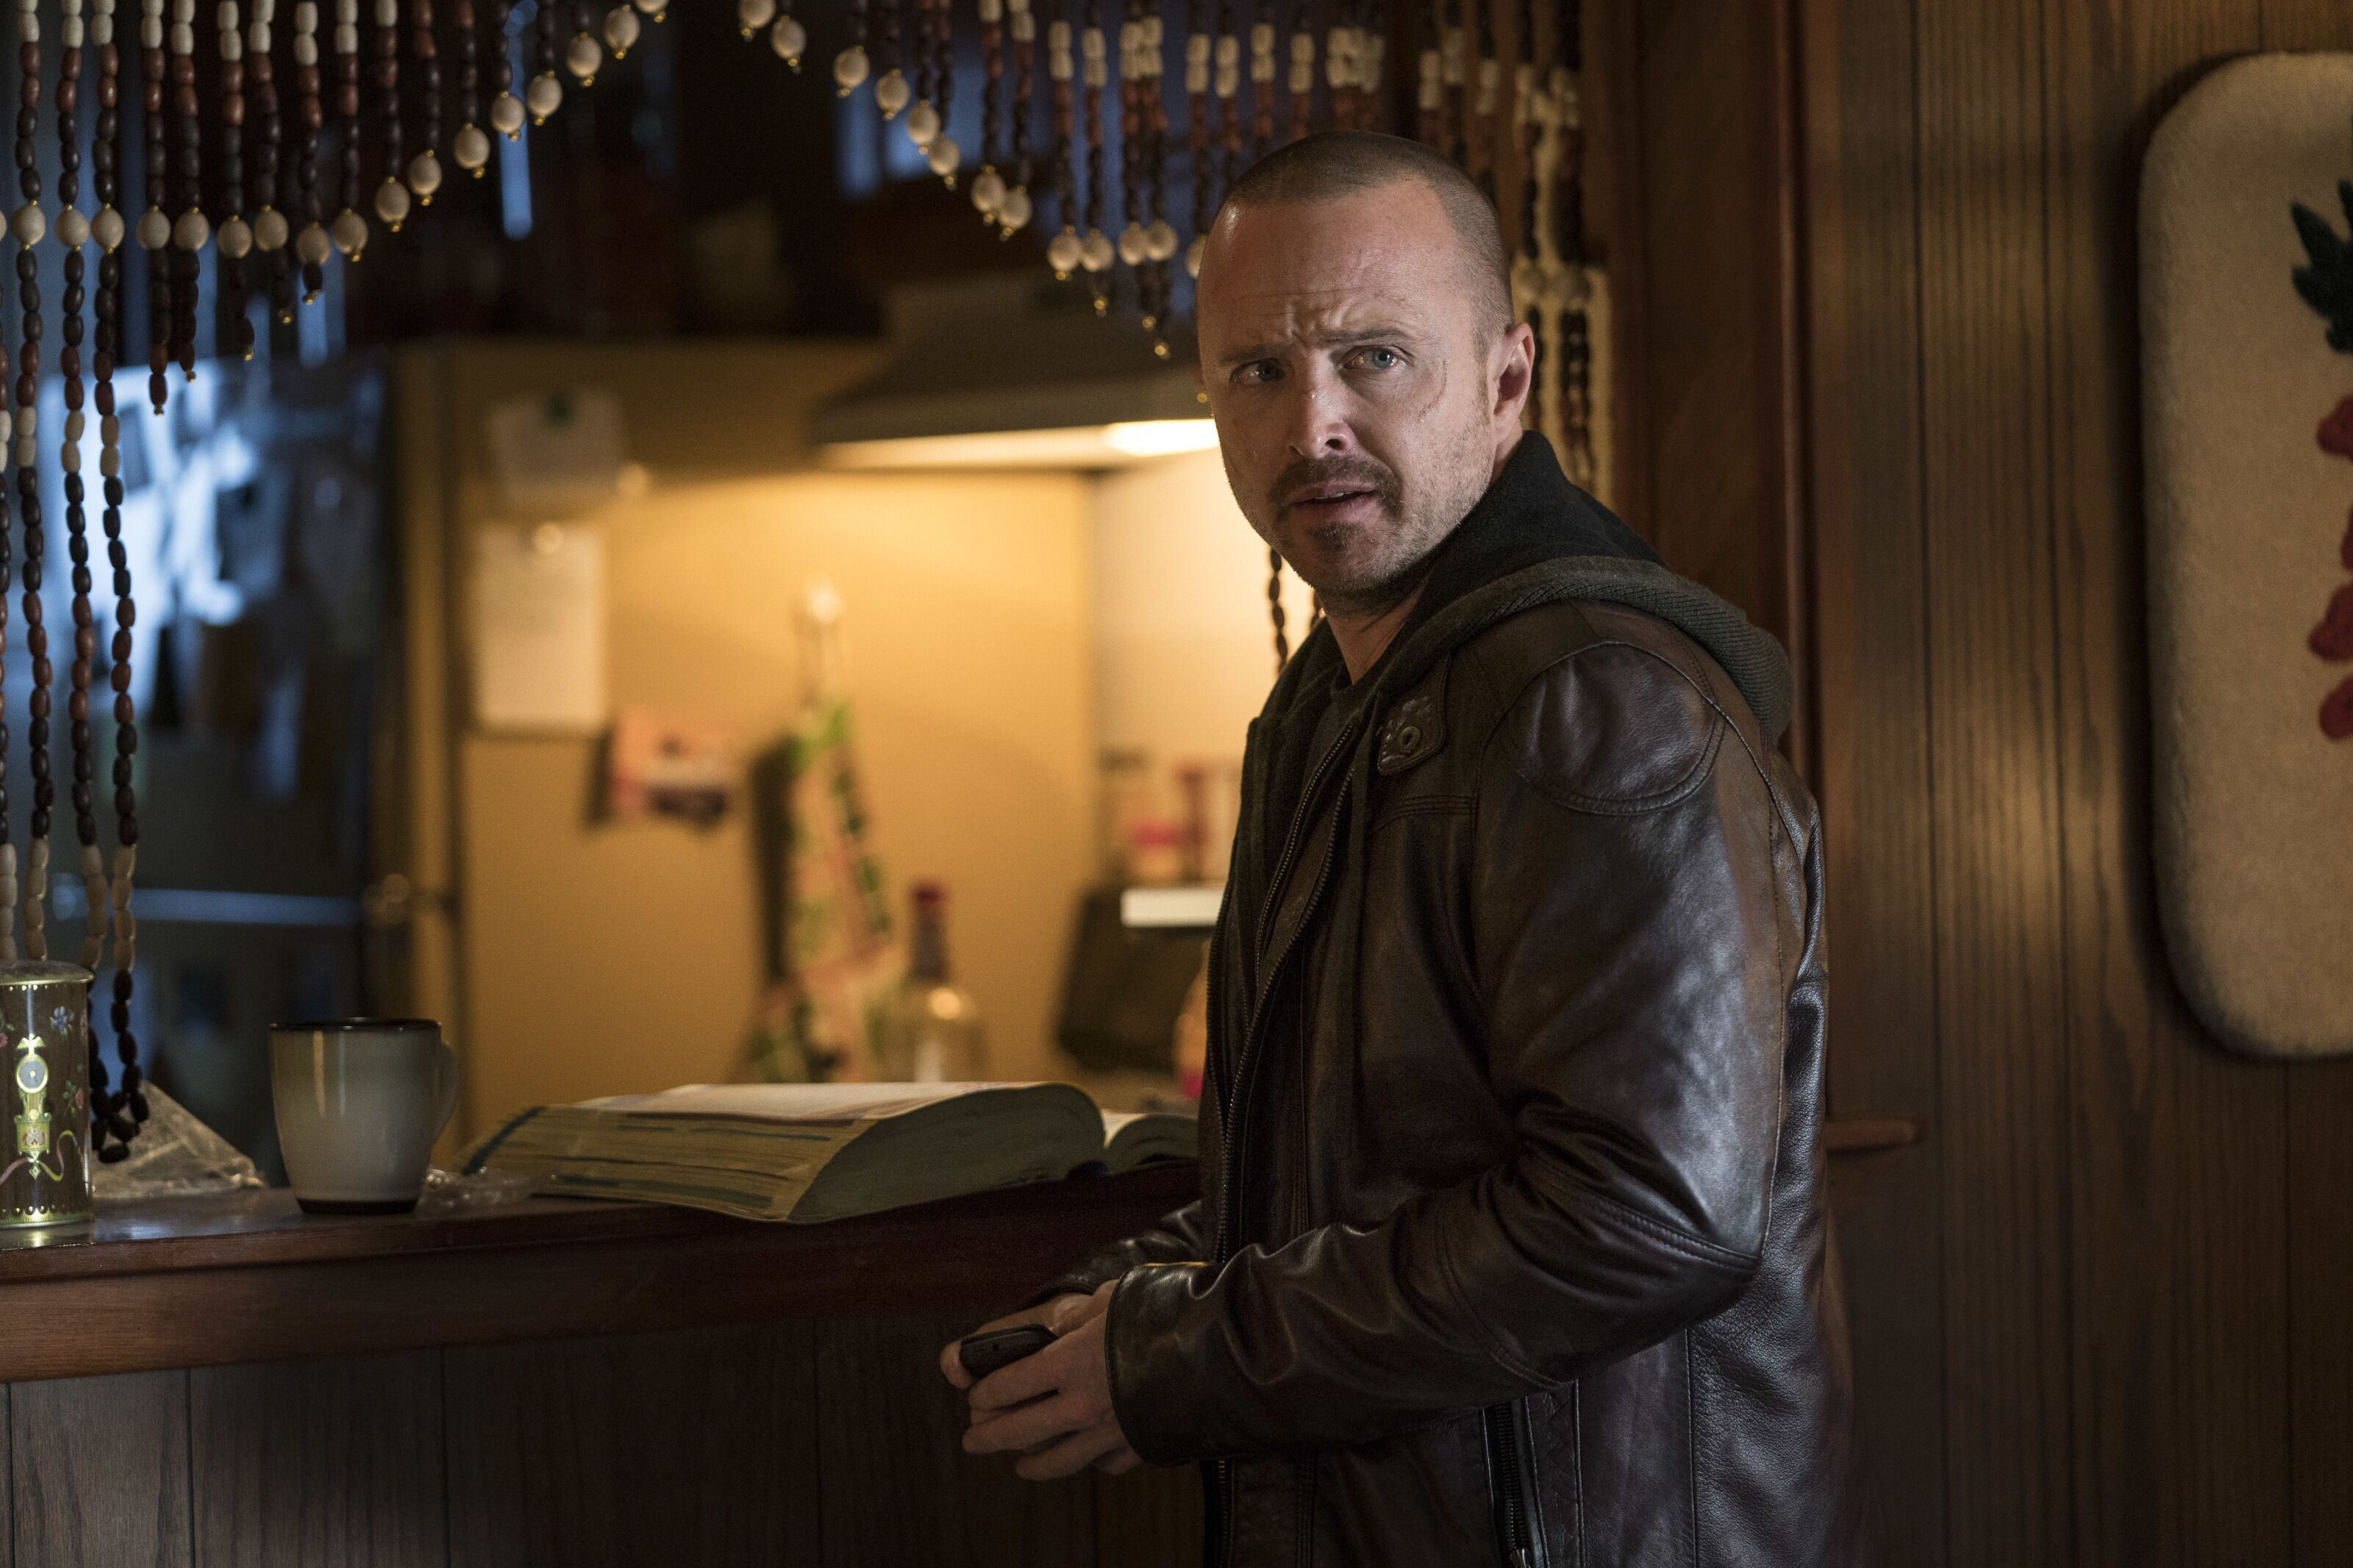 Leaning heavily on Breaking Bad nostalgia, El Camino quietly concludes Jesse's story